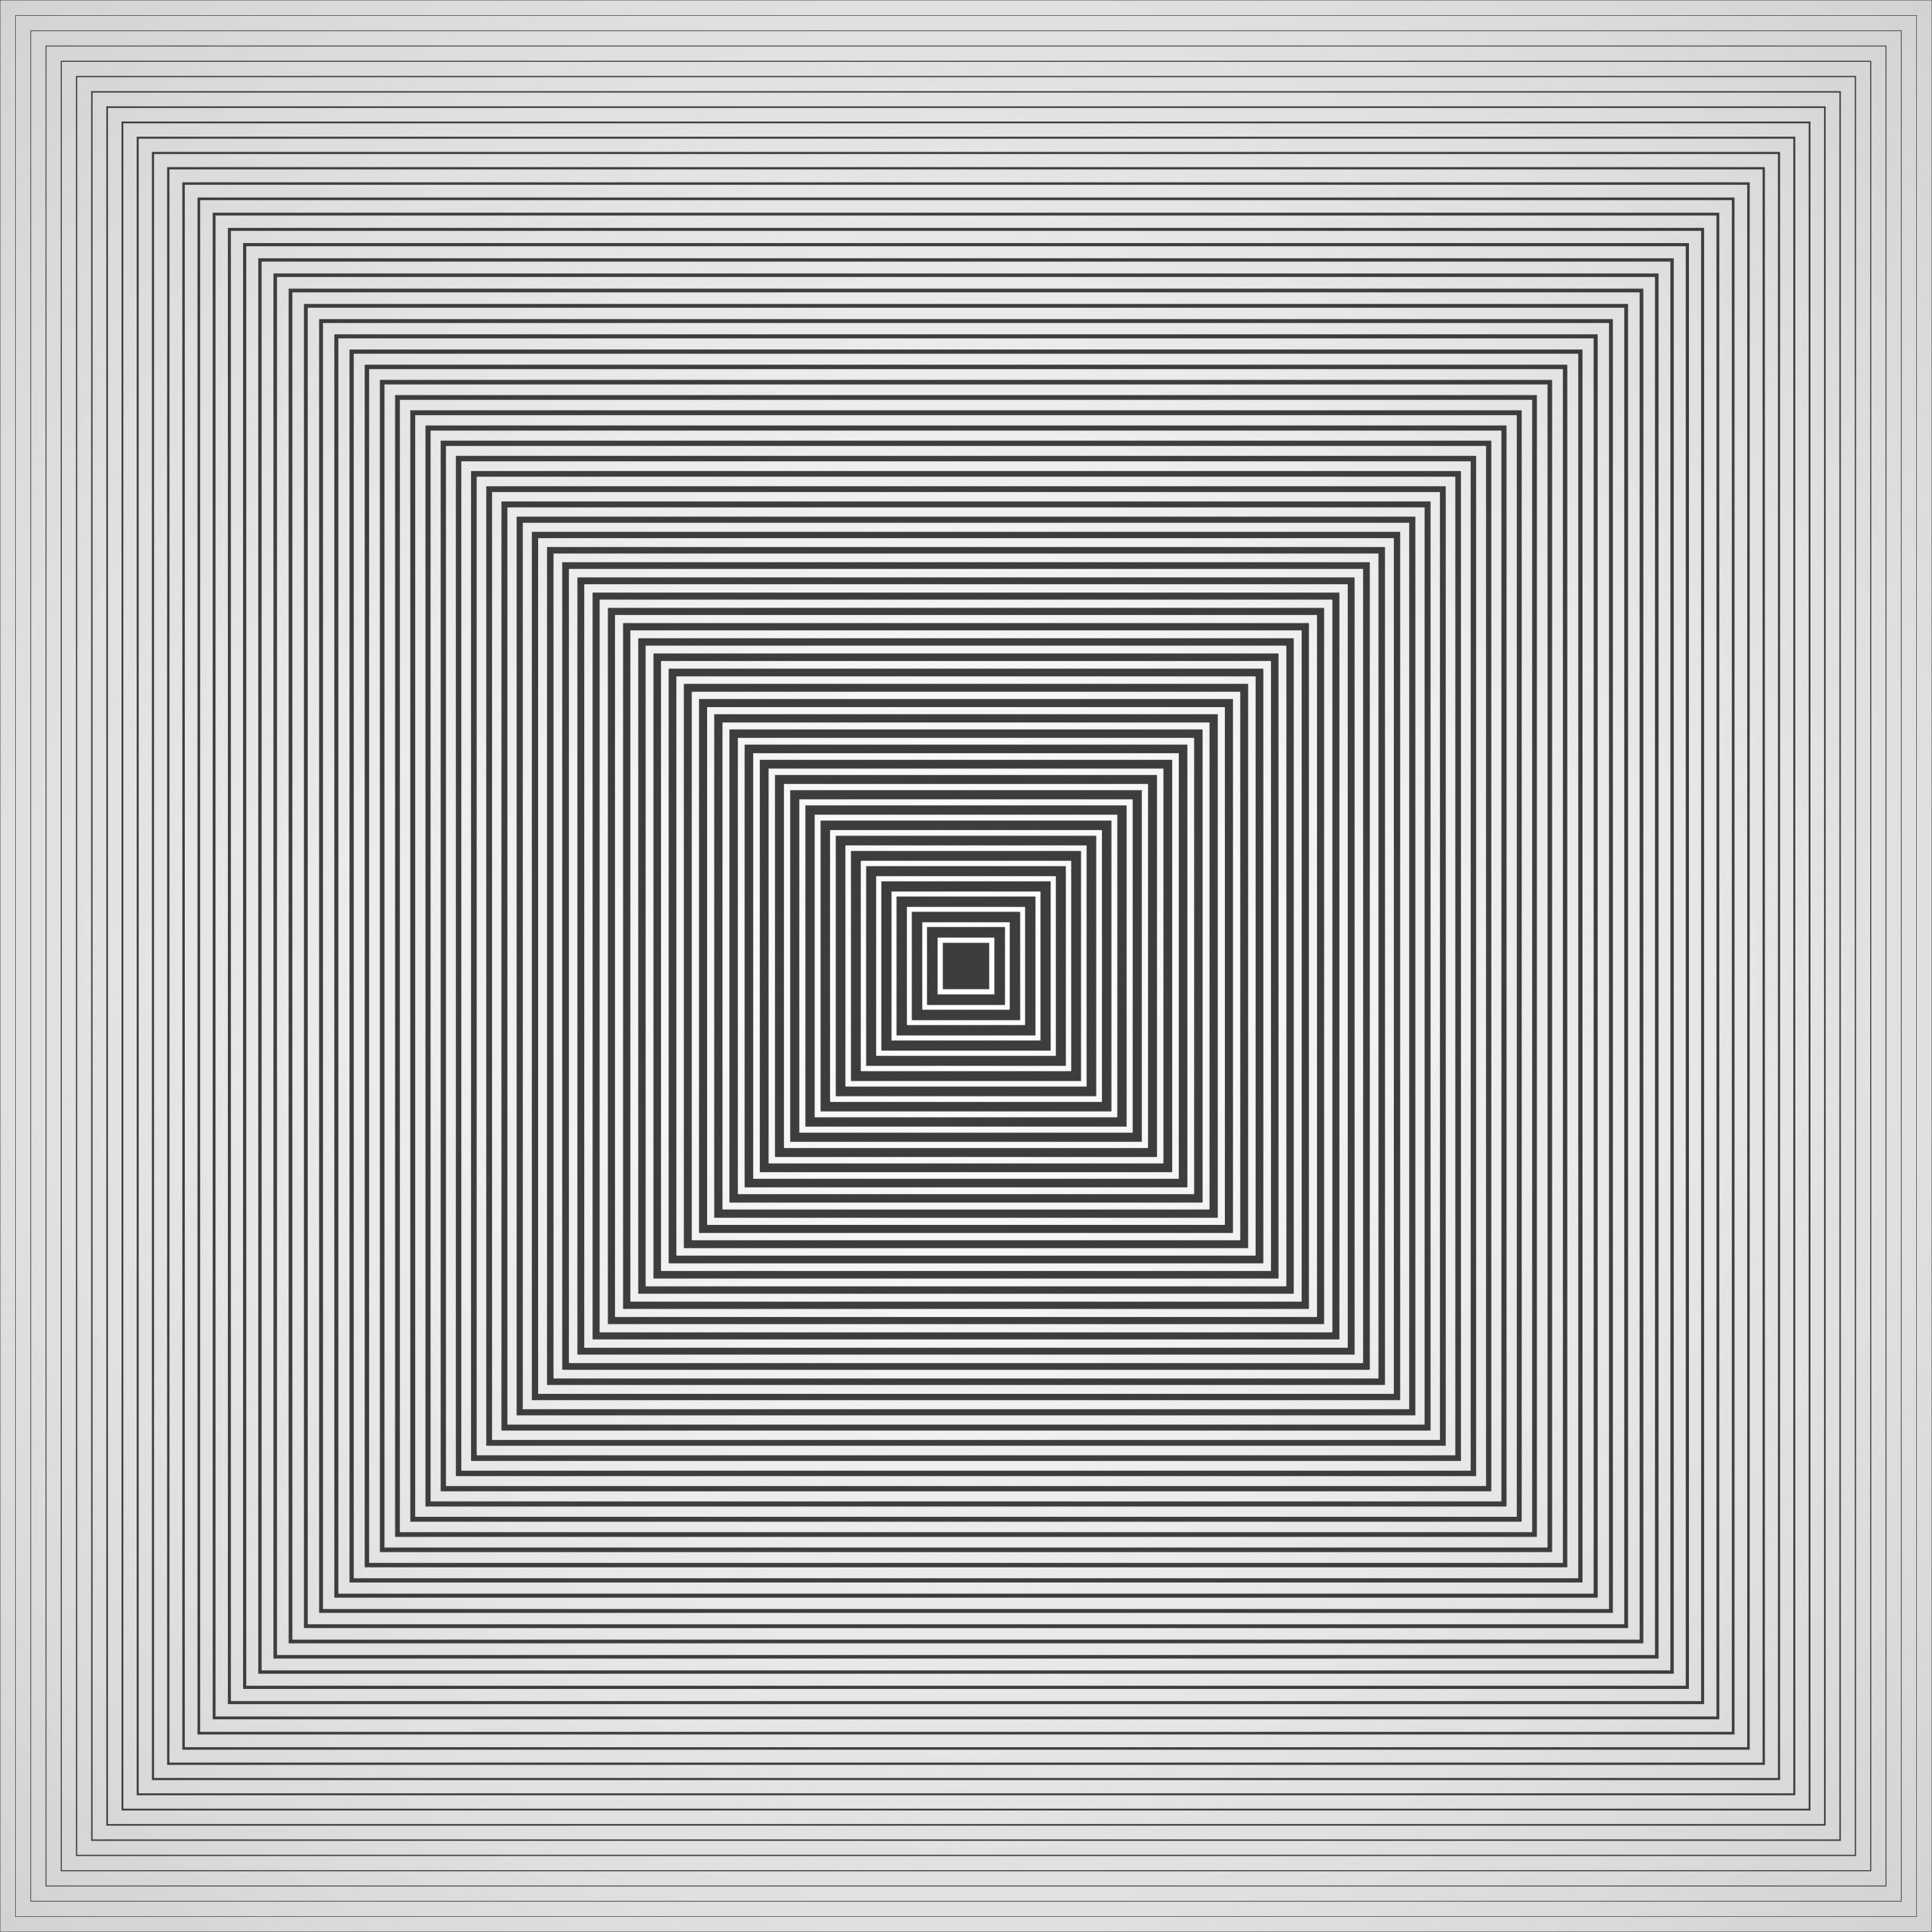 abstract of futuristic simple design black and white pyramid square pattern background vector